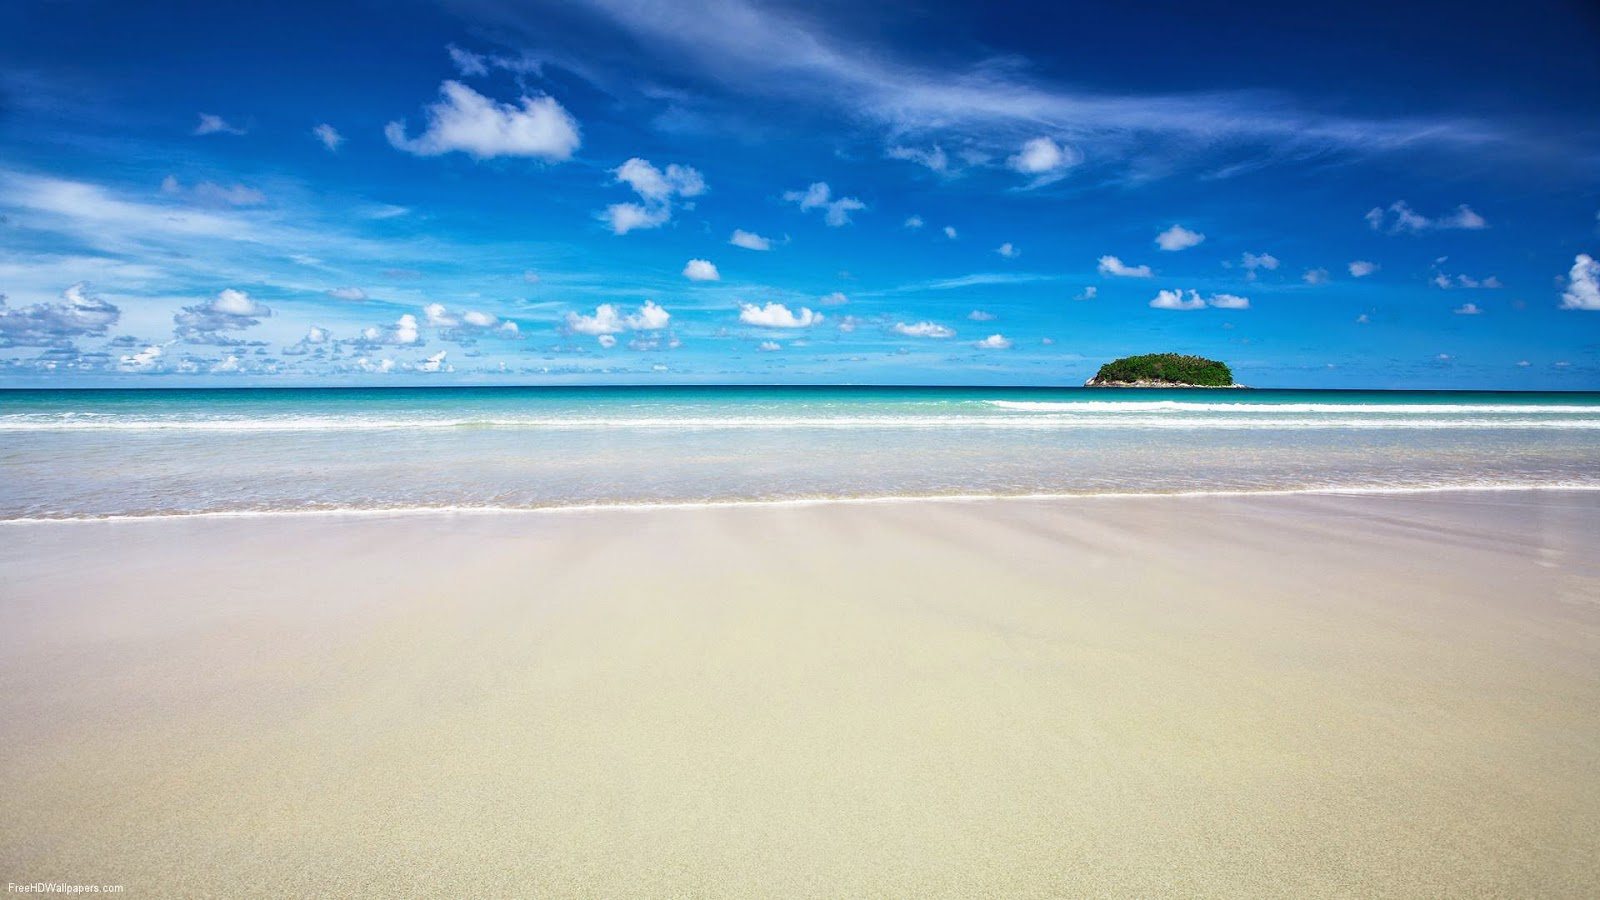 small-island-view-from-beach-with-white-sand-clear-sky-blue-sea-picture-image-1080p-HD.jpg